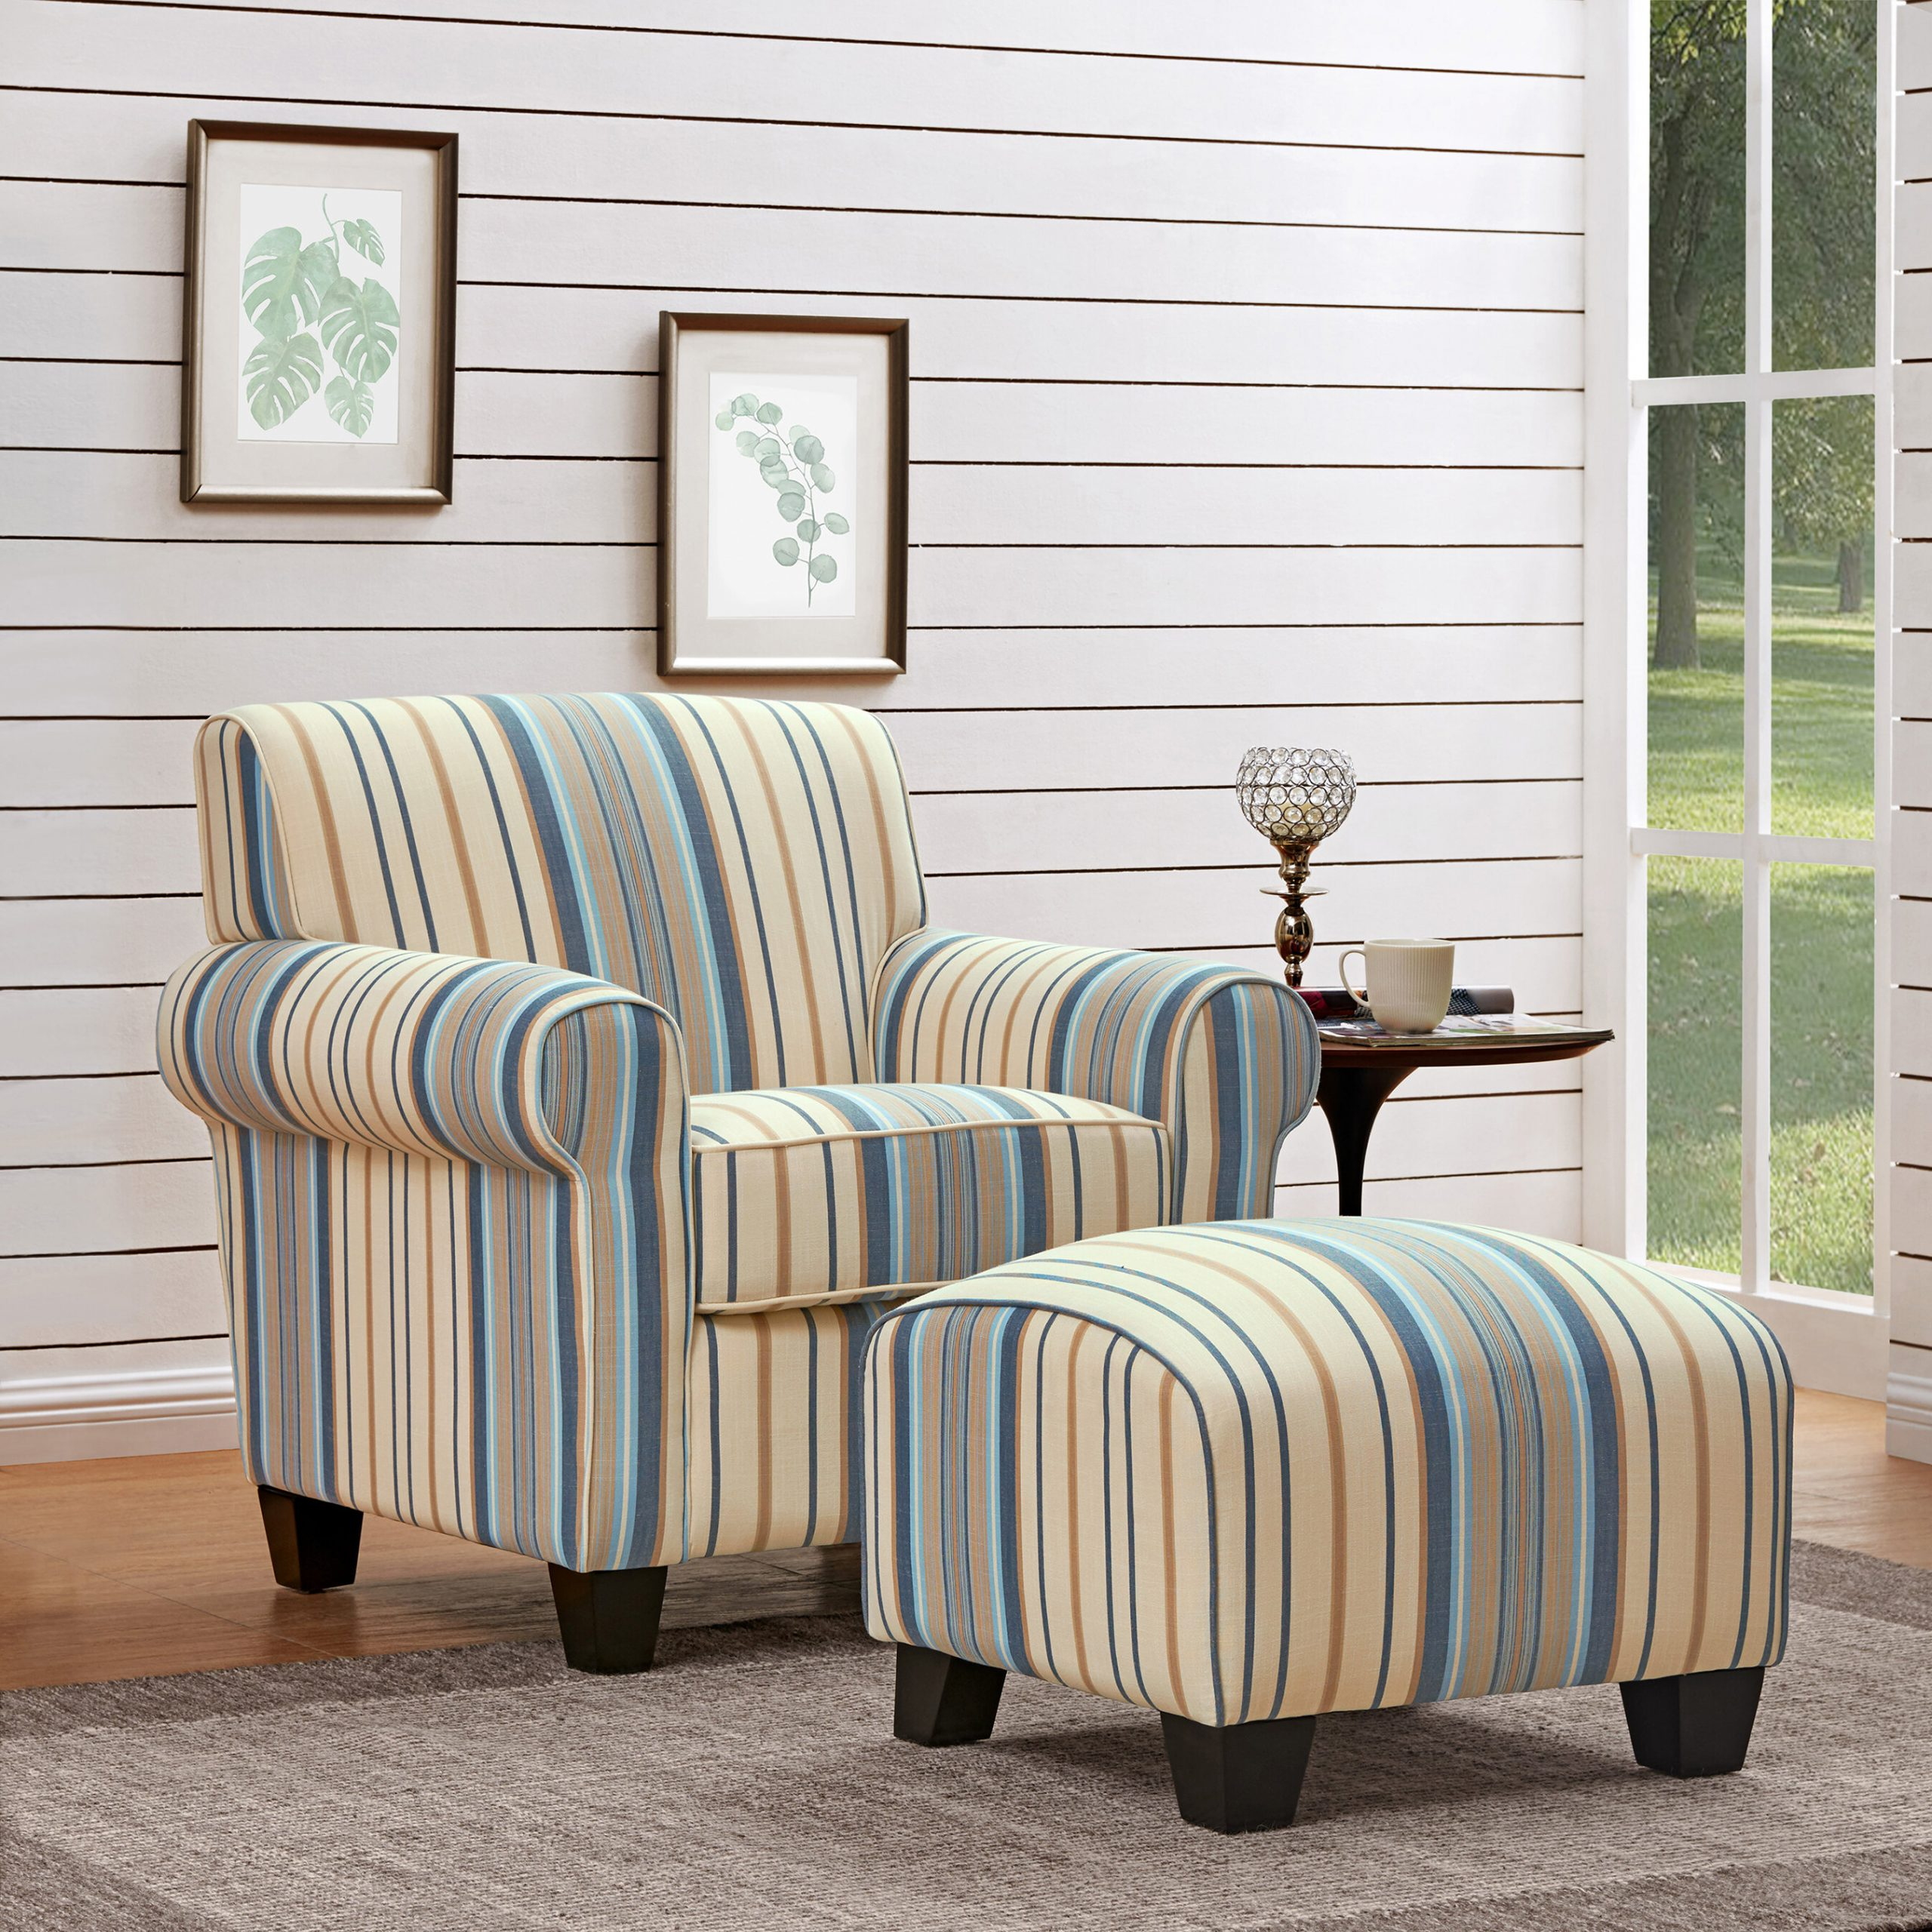 Favorite Michalak Cheswood Armchairs And Ottoman In Arm Ottoman Included Accent Chairs You'll Love In  (View 3 of 20)